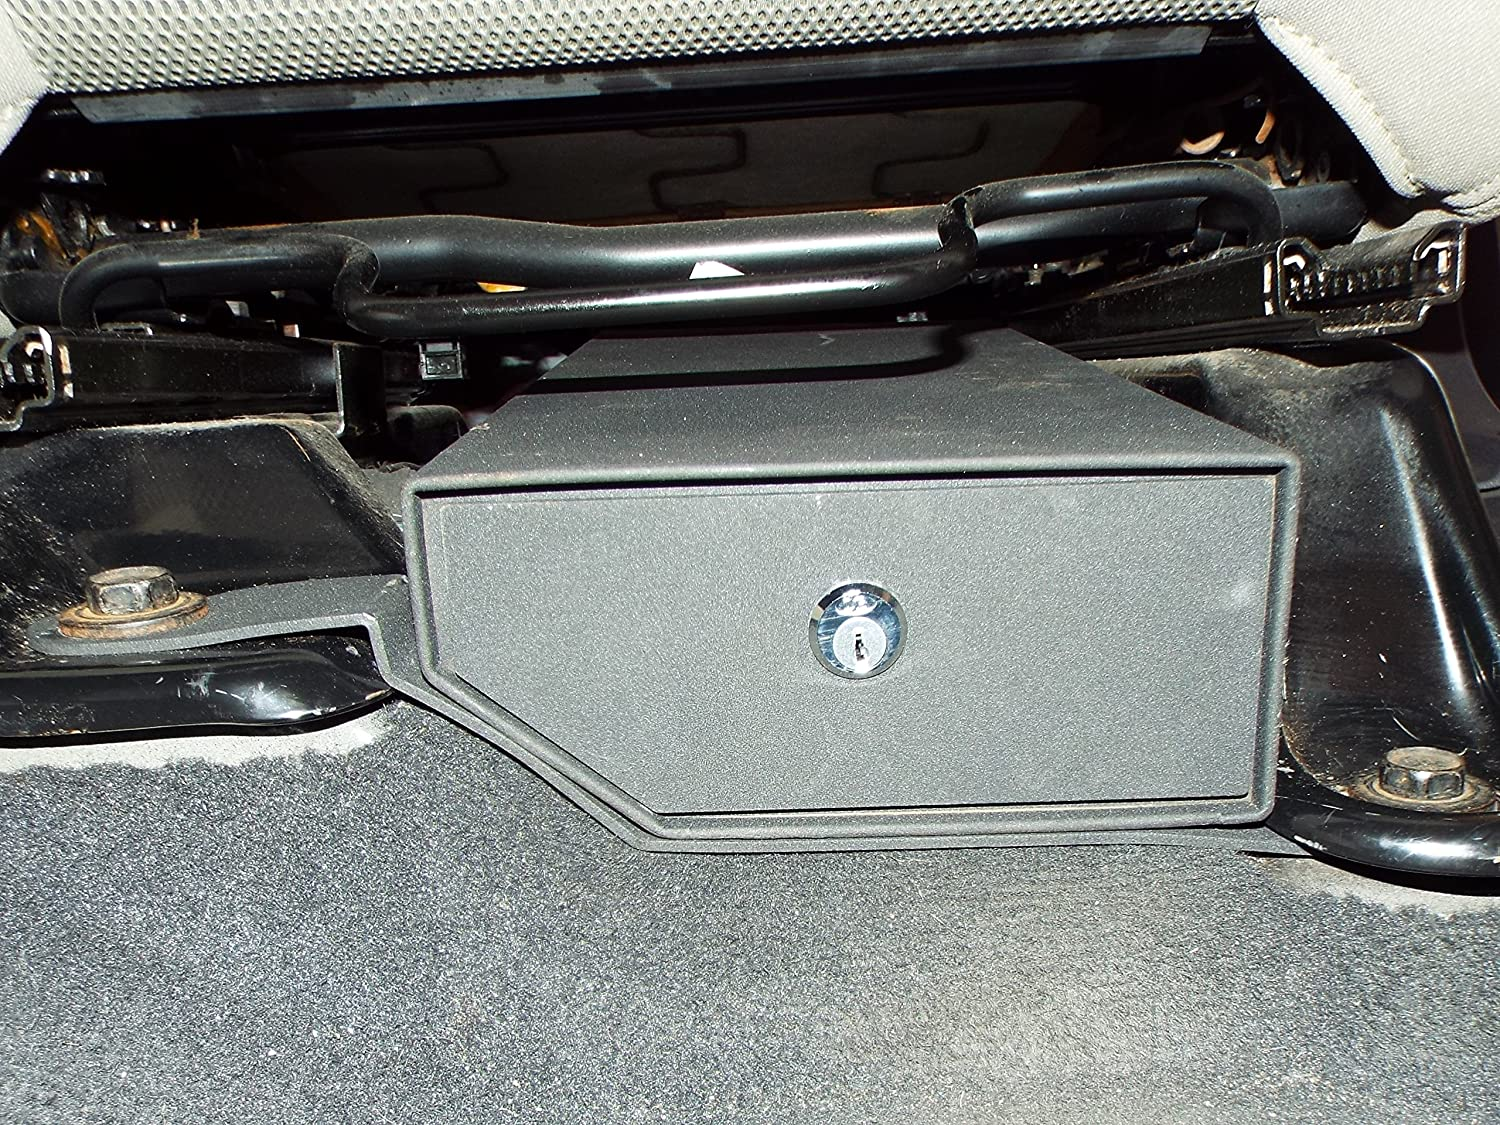 Rocket Offroad RO-JP-LK1 Black Locking Underseat Storage Box for Wrangler Driver Side